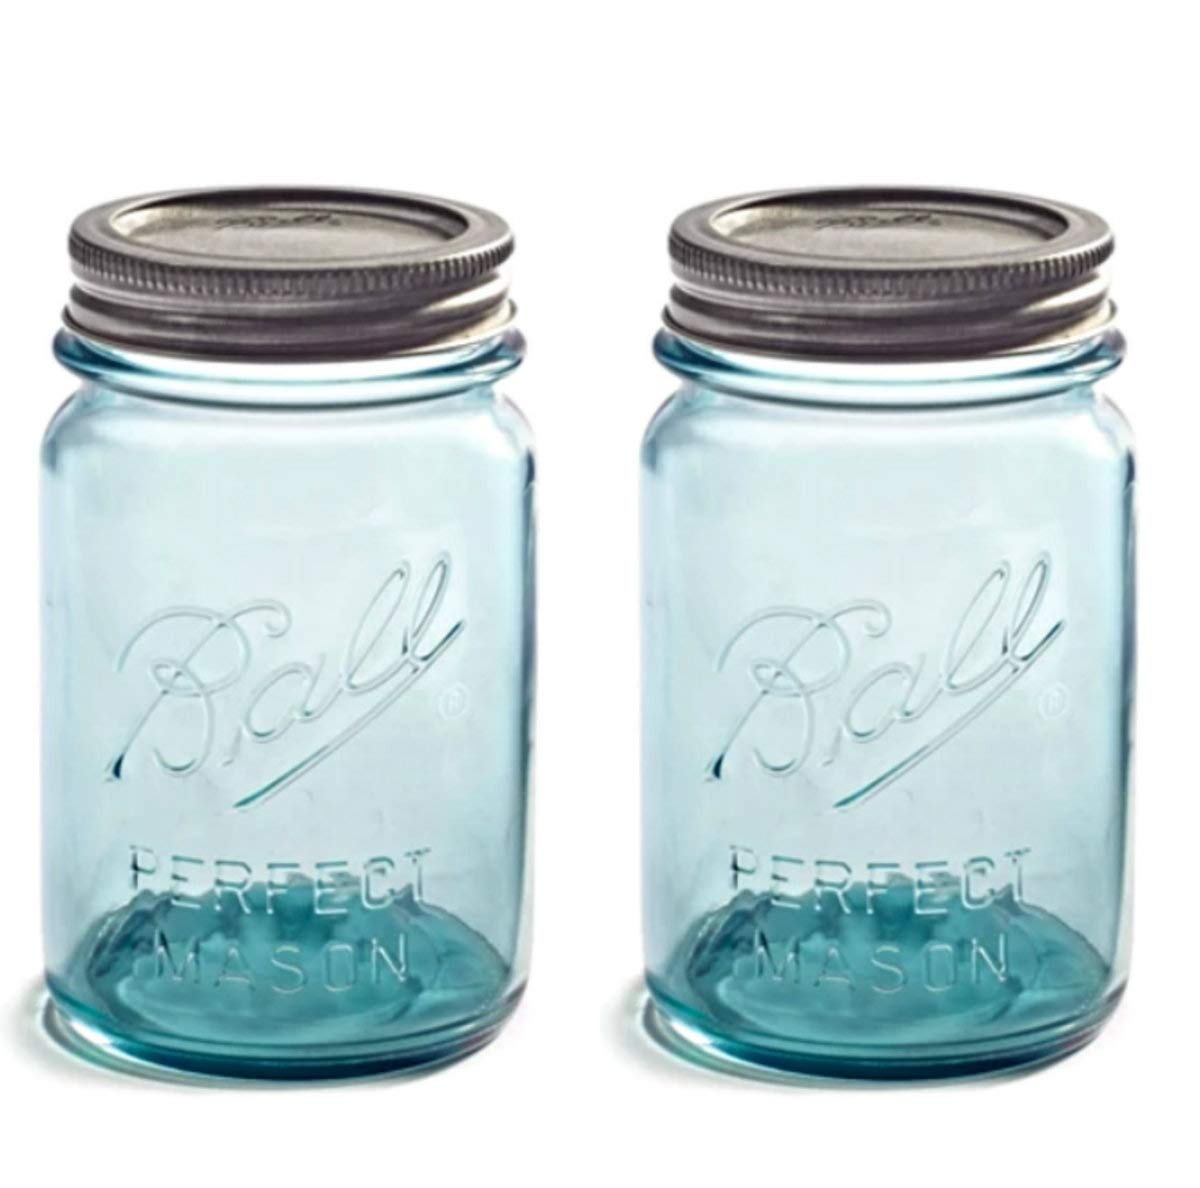 "Set of TWO Vintage Aqua/Blue BALL""Perfect Mason"" 16oz Pint Jars - Limited Collector's Edition Turn-of-the-century Design (1910-1923)"